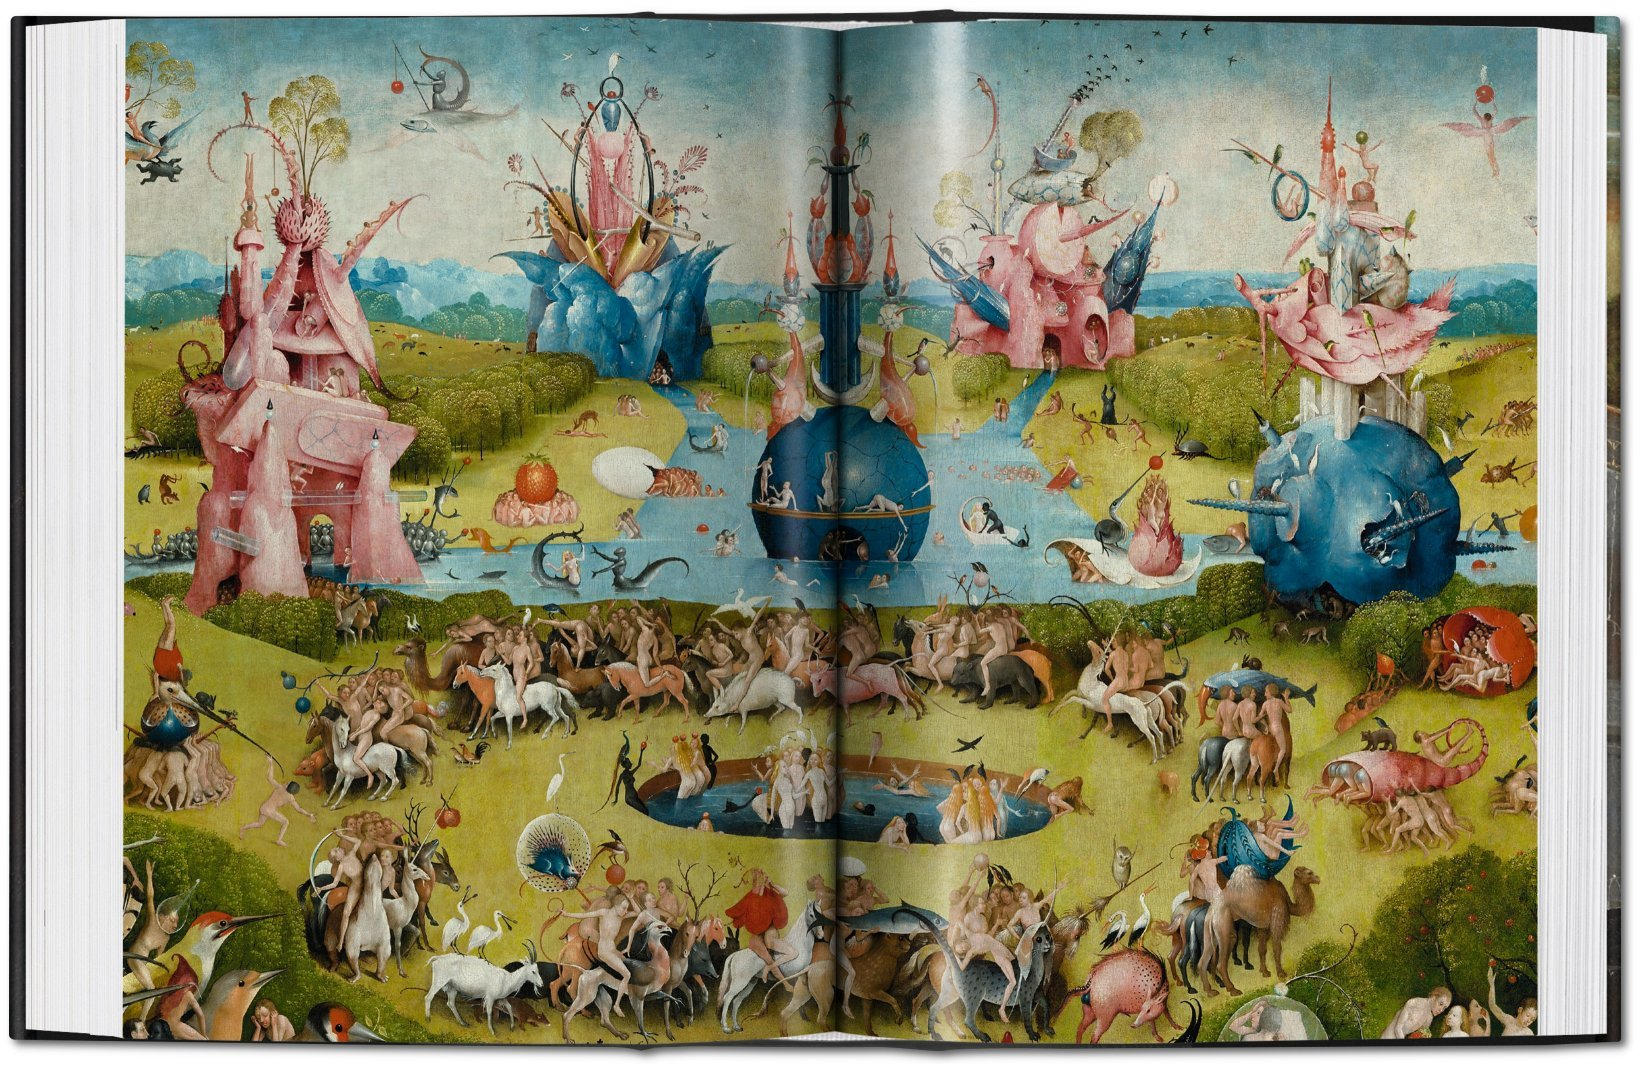 a biography and works of hieronymous bosch a flemish painter Hieronymus bosch was an early netherlandish artist who dedicated his life to producing works that broke away from traditional flemish painting his work used vivid imagery to depict moral and religious ideas and stories, and he set himself apart from his contemporaries with the disturbing detail of his panel pictures.